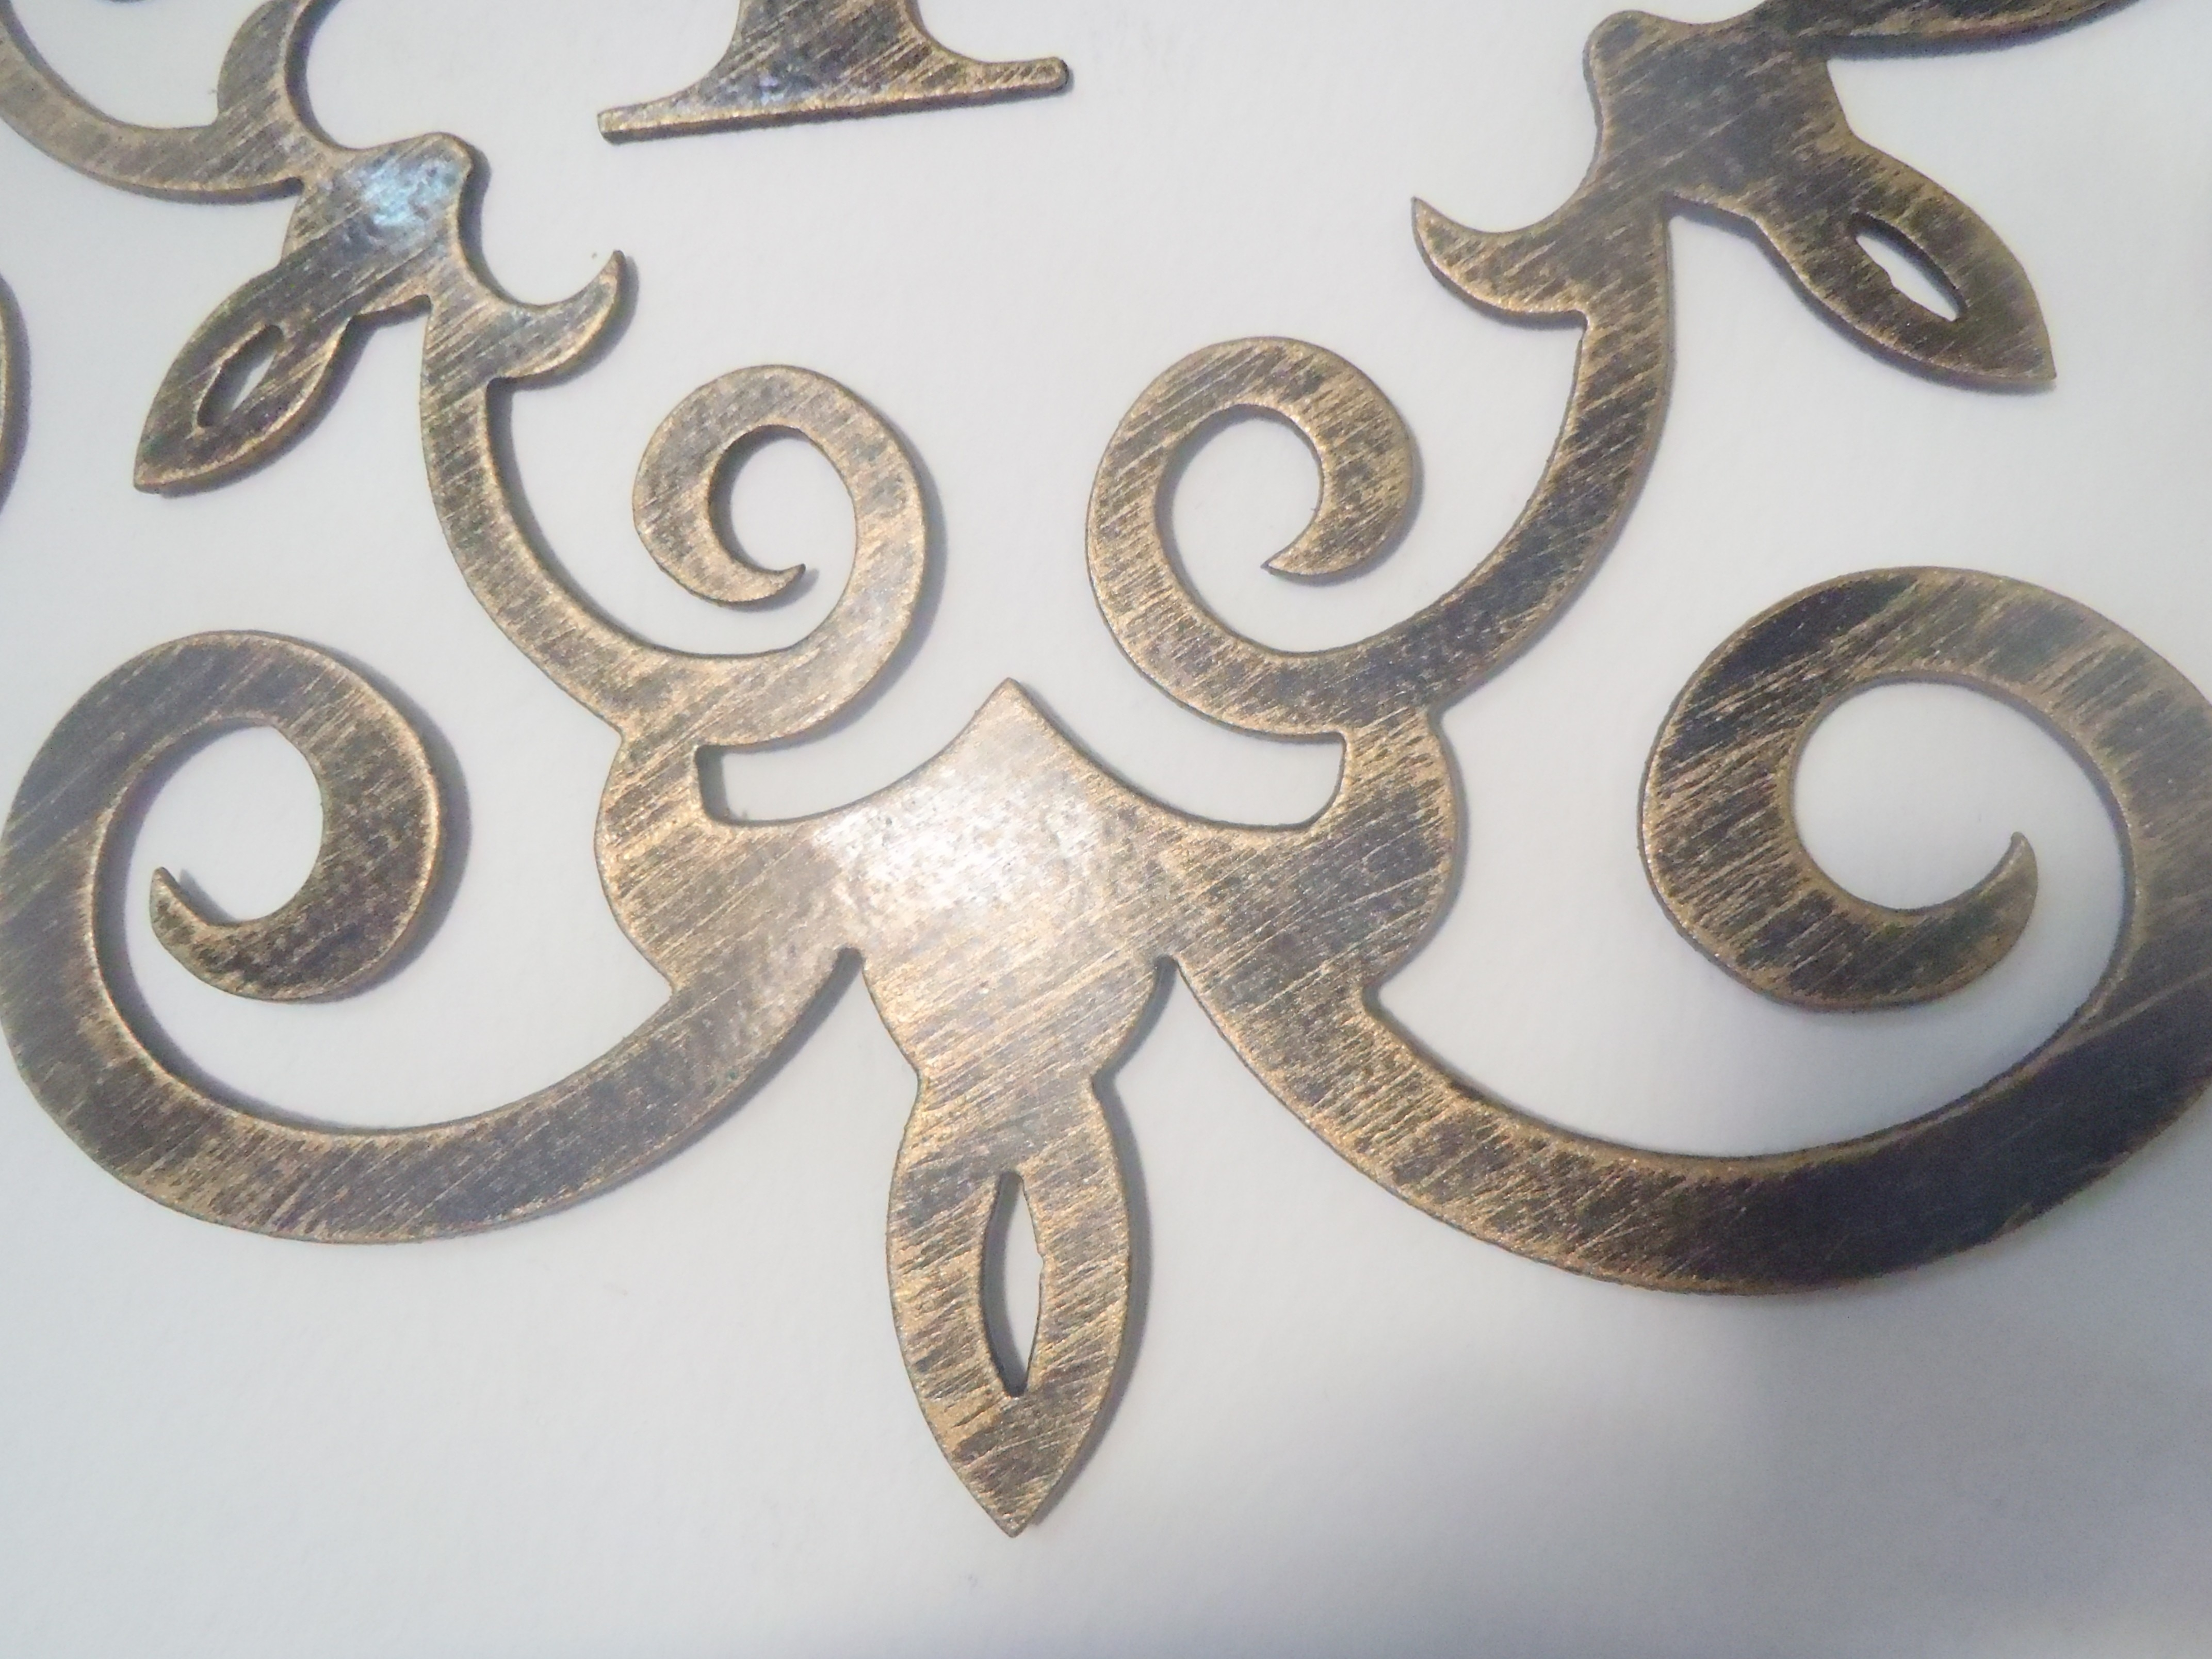 Family Initial, Monogram Inside A Metal Scroll With F Letter, 12 throughout Metal Letter Wall Art (Image 4 of 20)